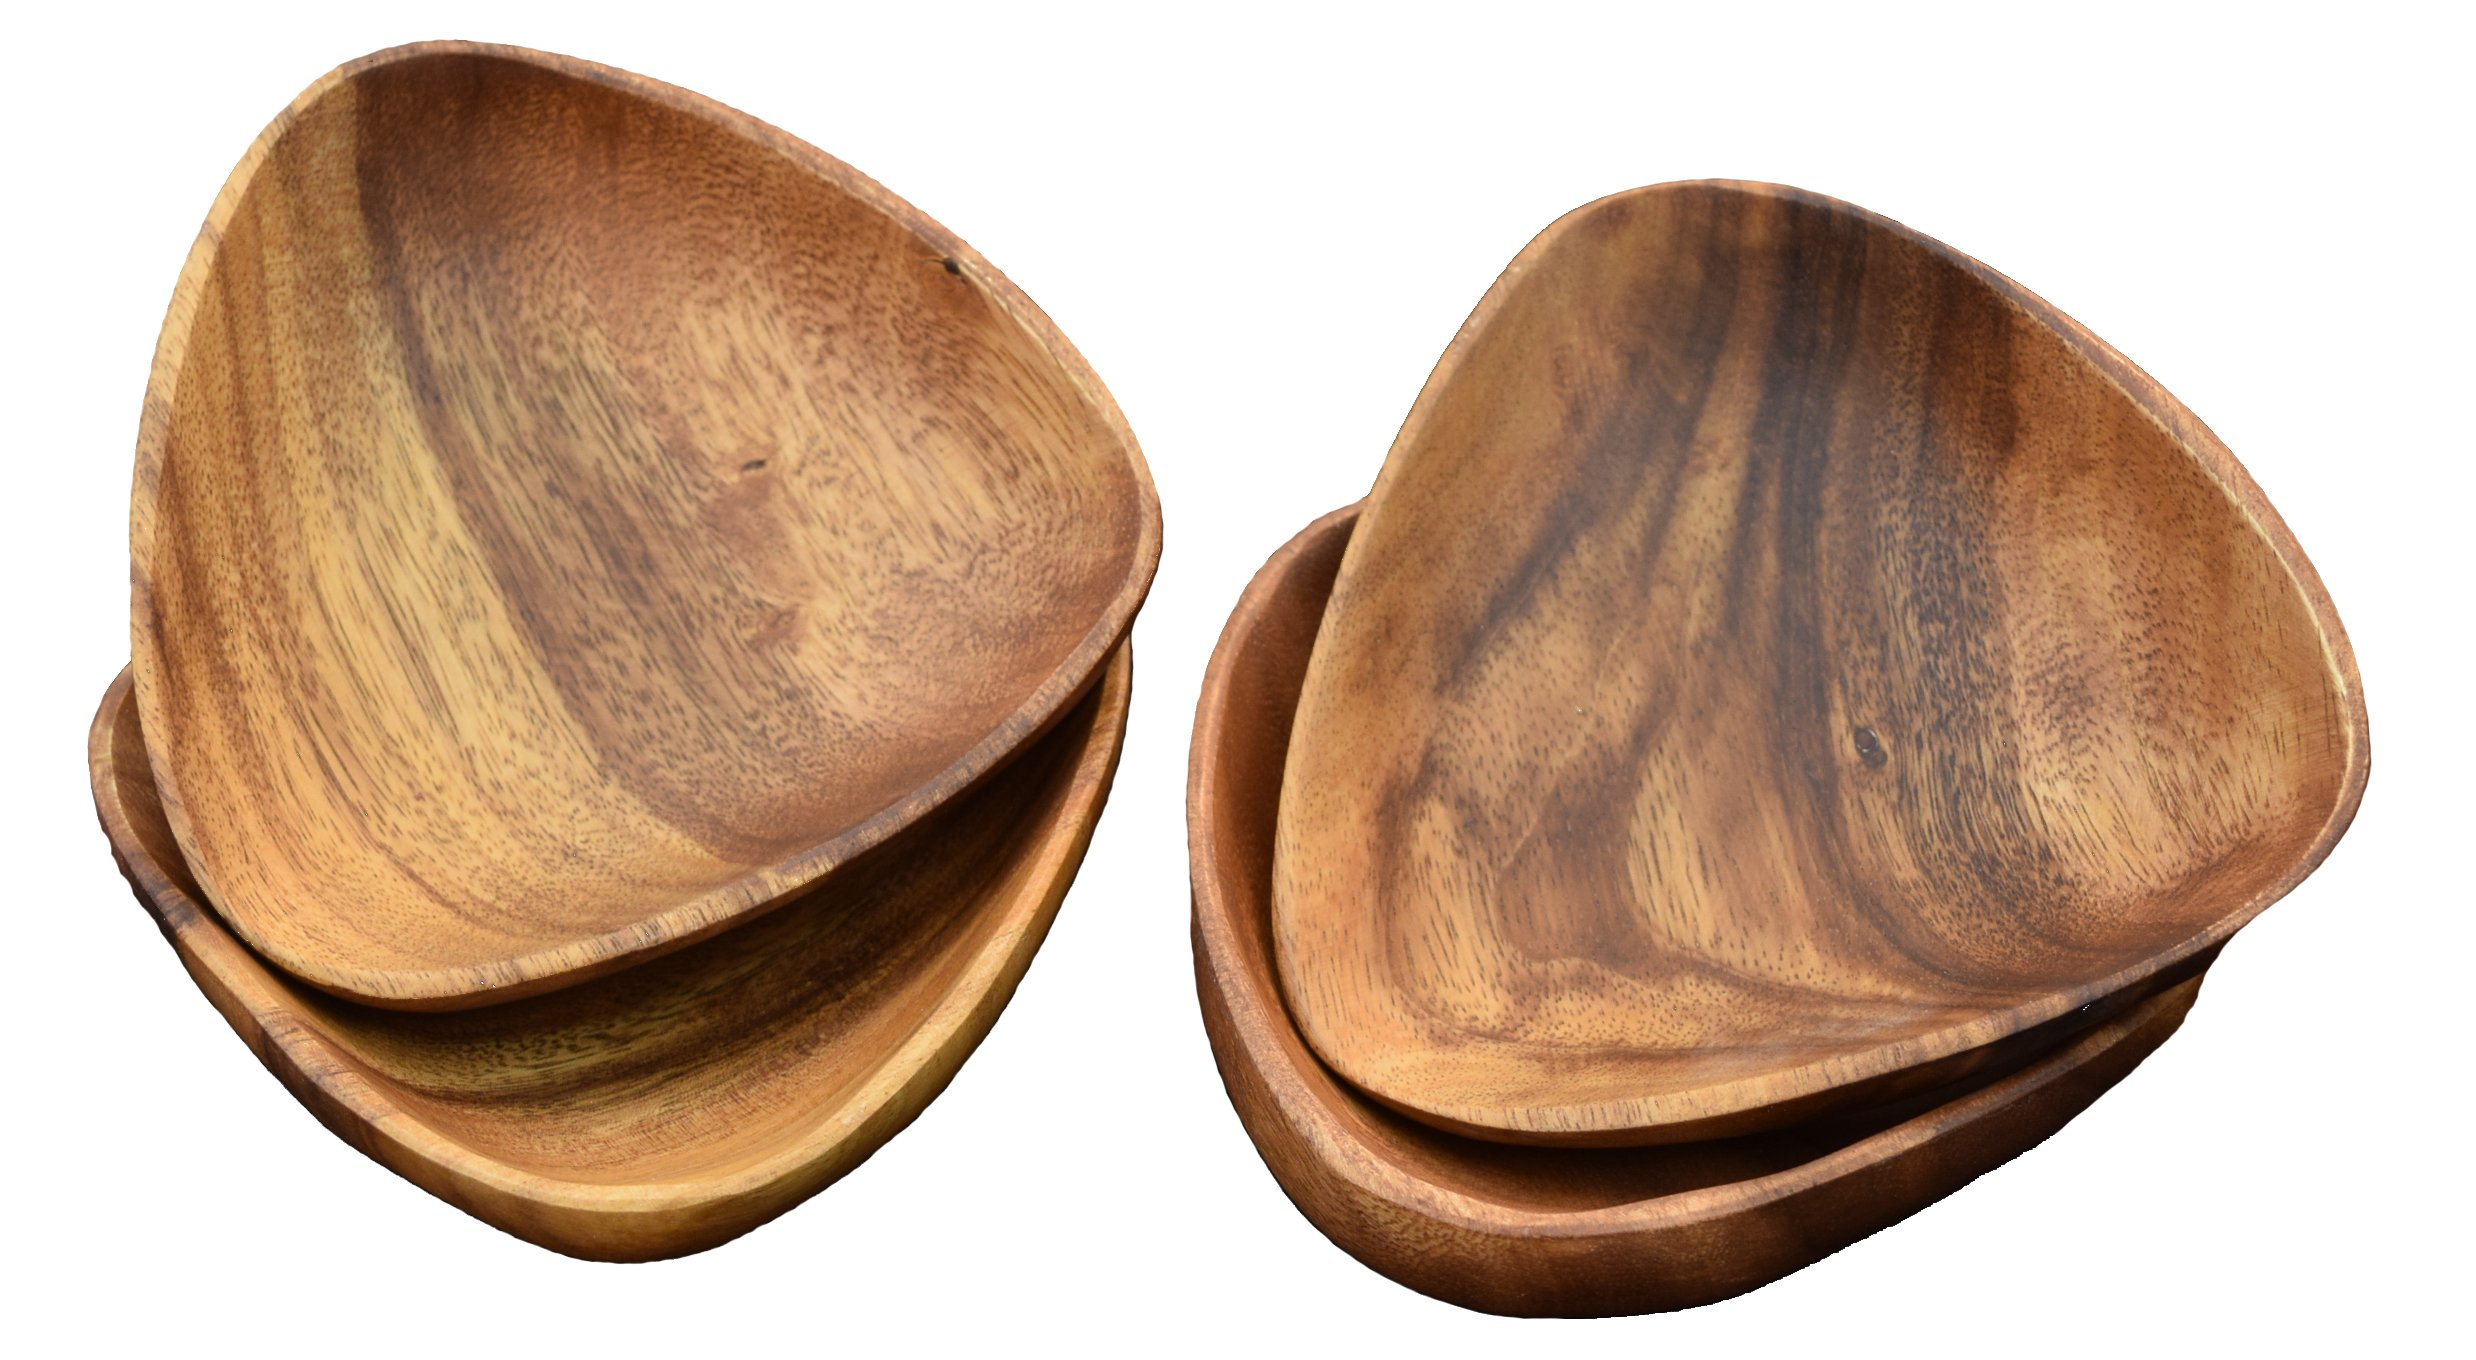 Pacific Merchants Acaciaware Dipping And Nut Bowls, 4 inches by 4 inches by 1-1/2, Set Of 4